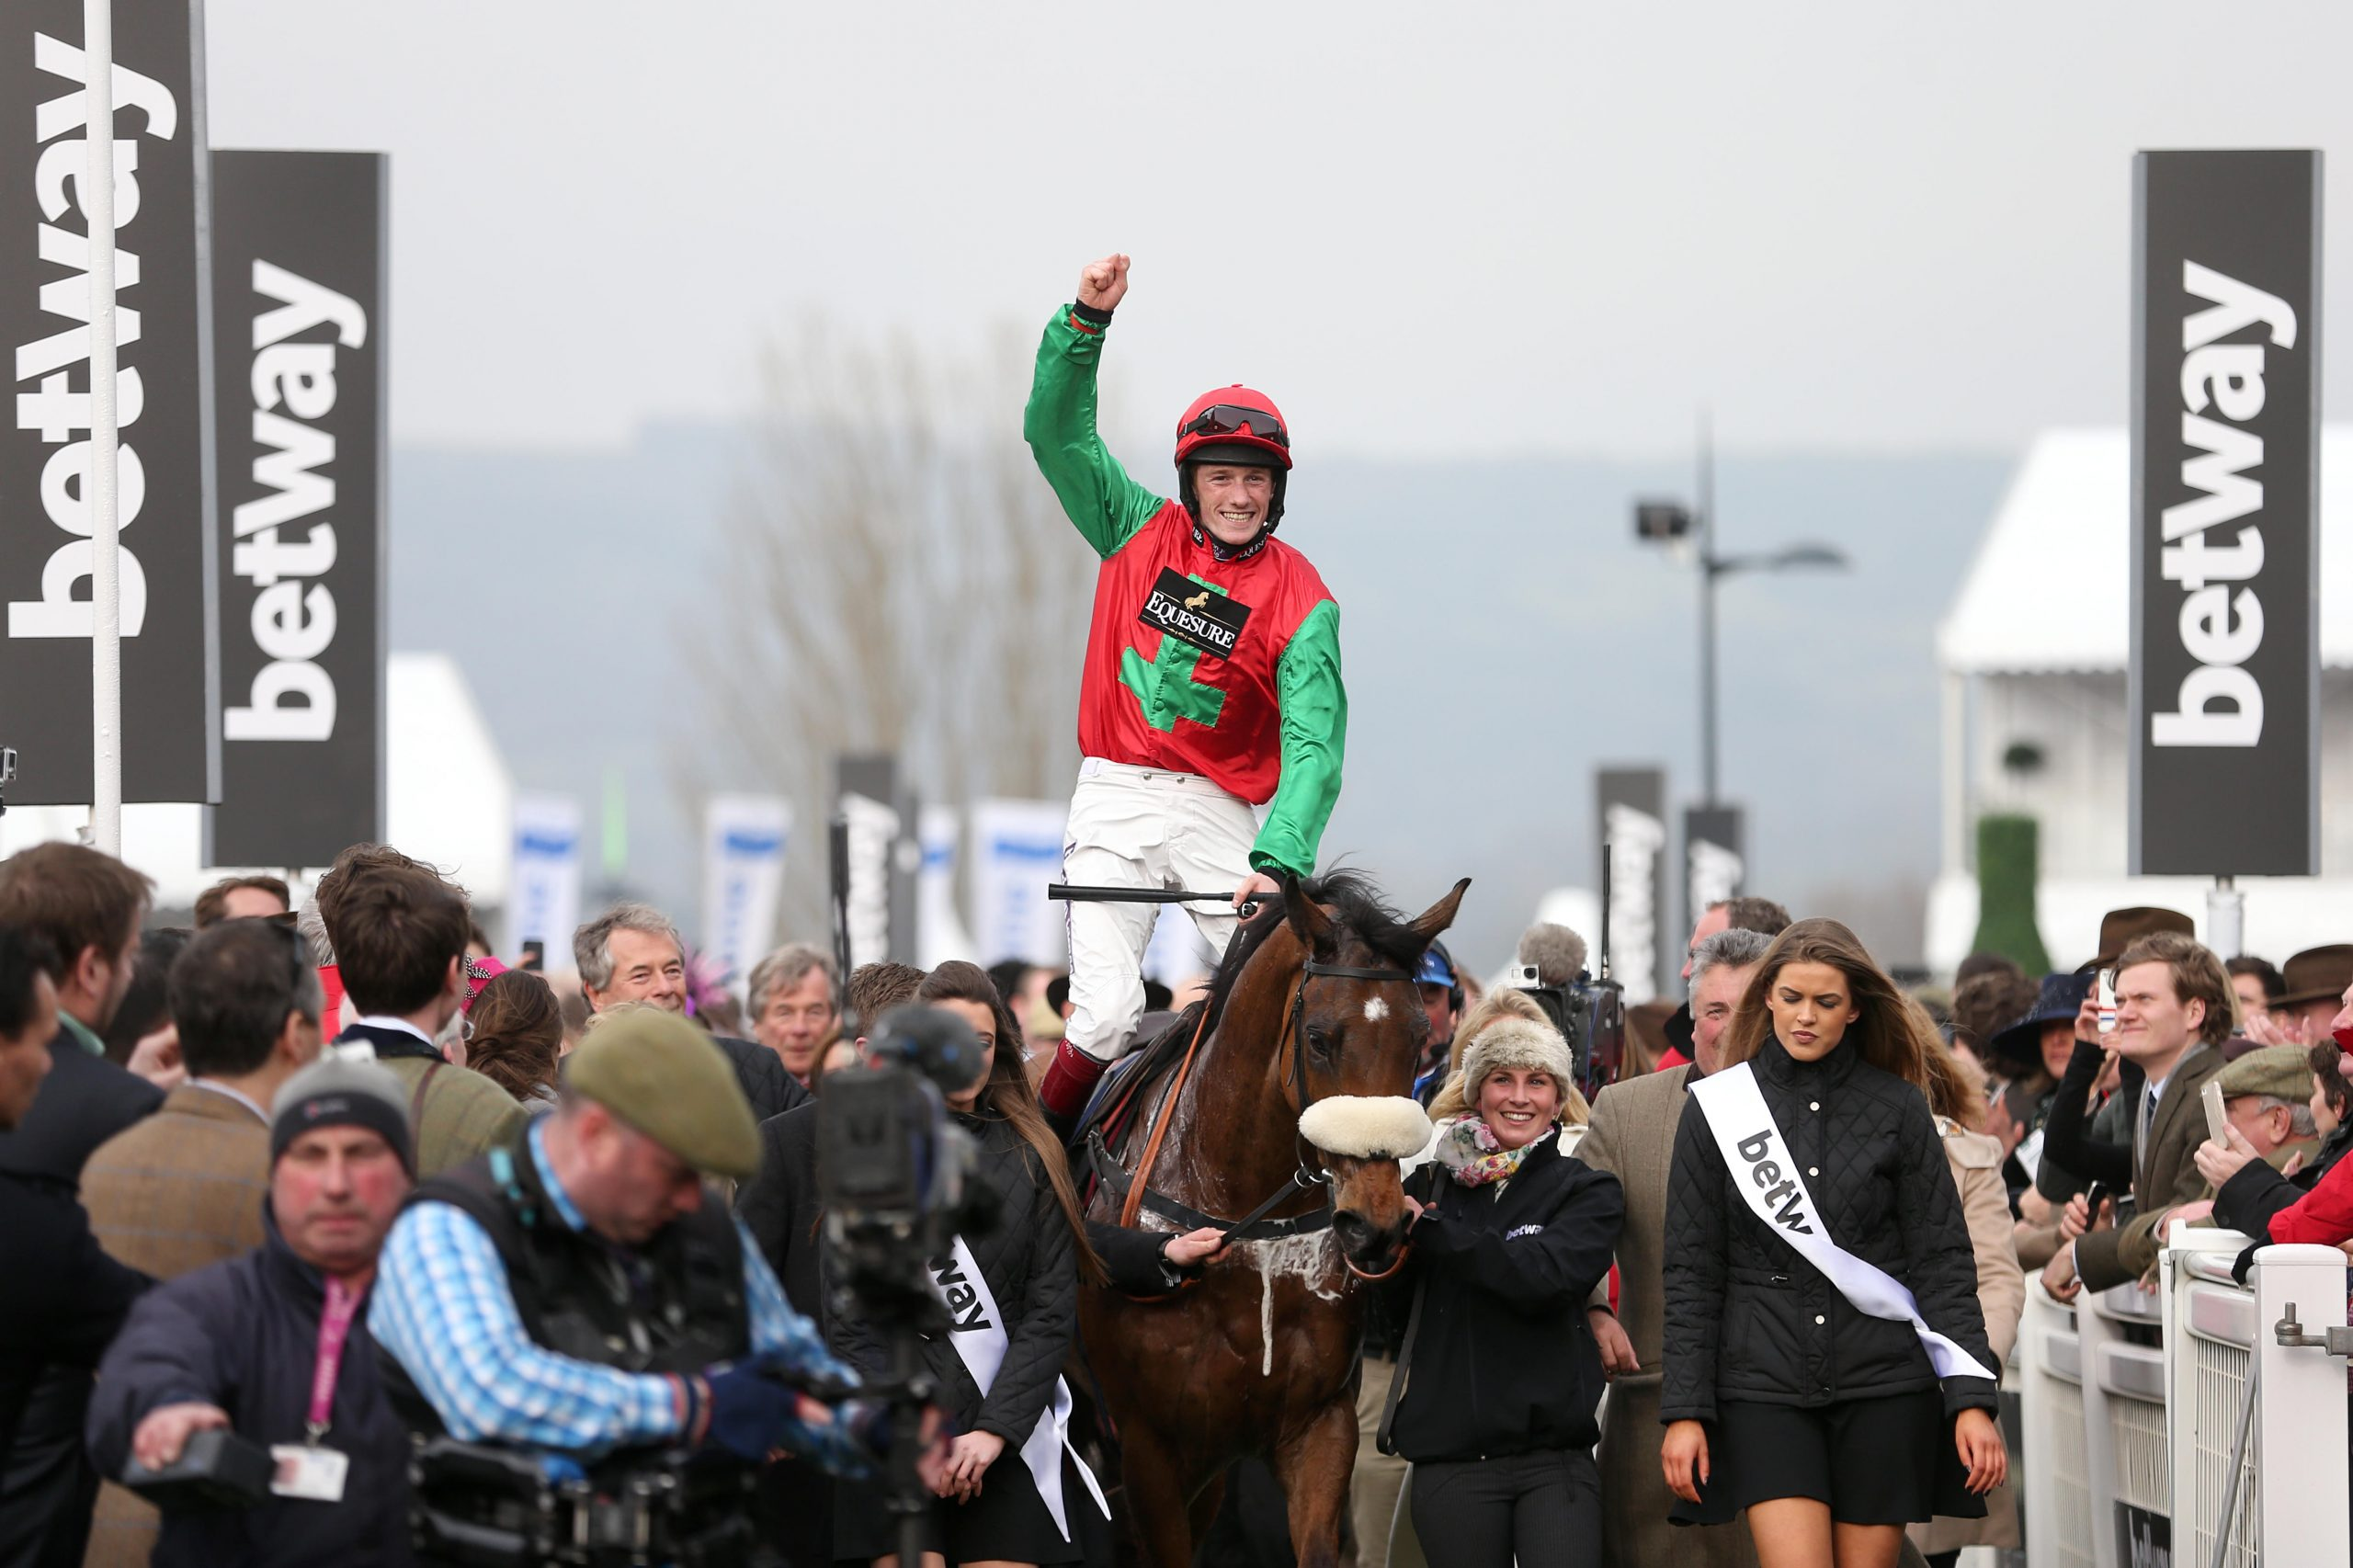 Jockey Sam Twiston-Davies celebrates on board Dodging Bullets after winning the Betway Queen Mother Champion Chase on Ladies Day during the Cheltenham Festival at Cheltenham Racecourse.